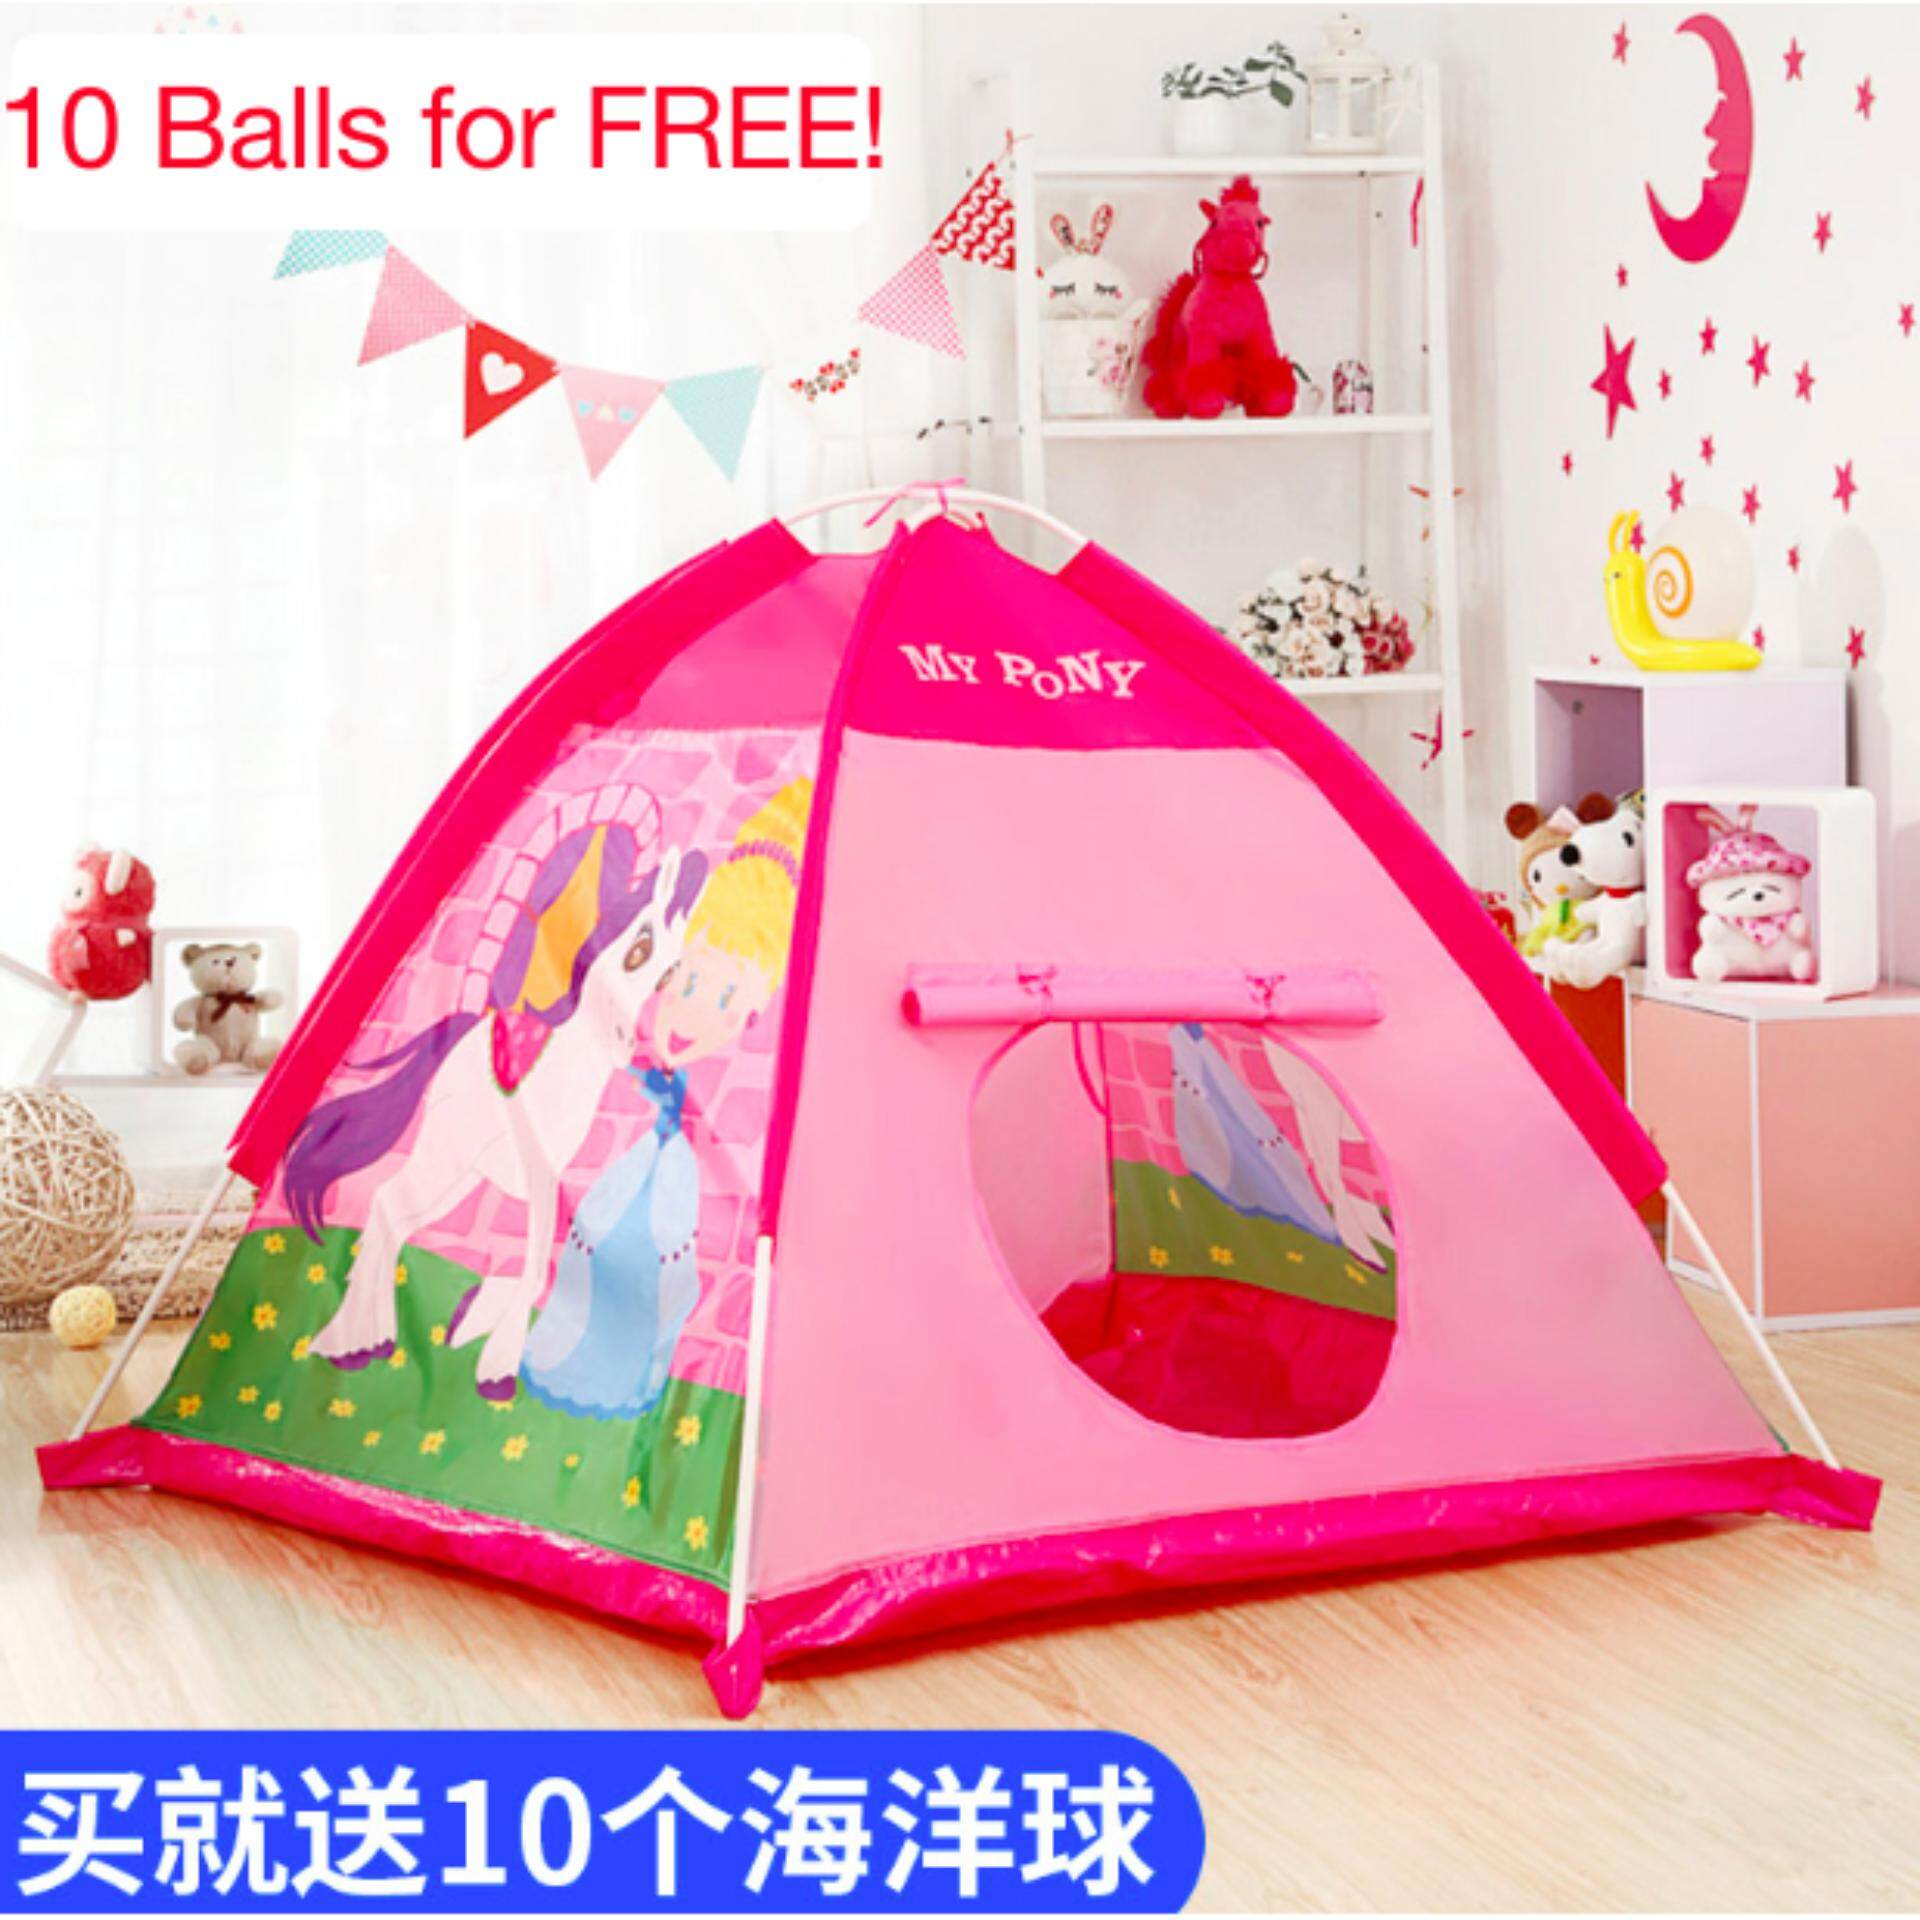 Foldable Pink Play Tent Outdoor Toys And Games Kids Playhouse Balls Pool (pink) (pink) By Your Warehouse.